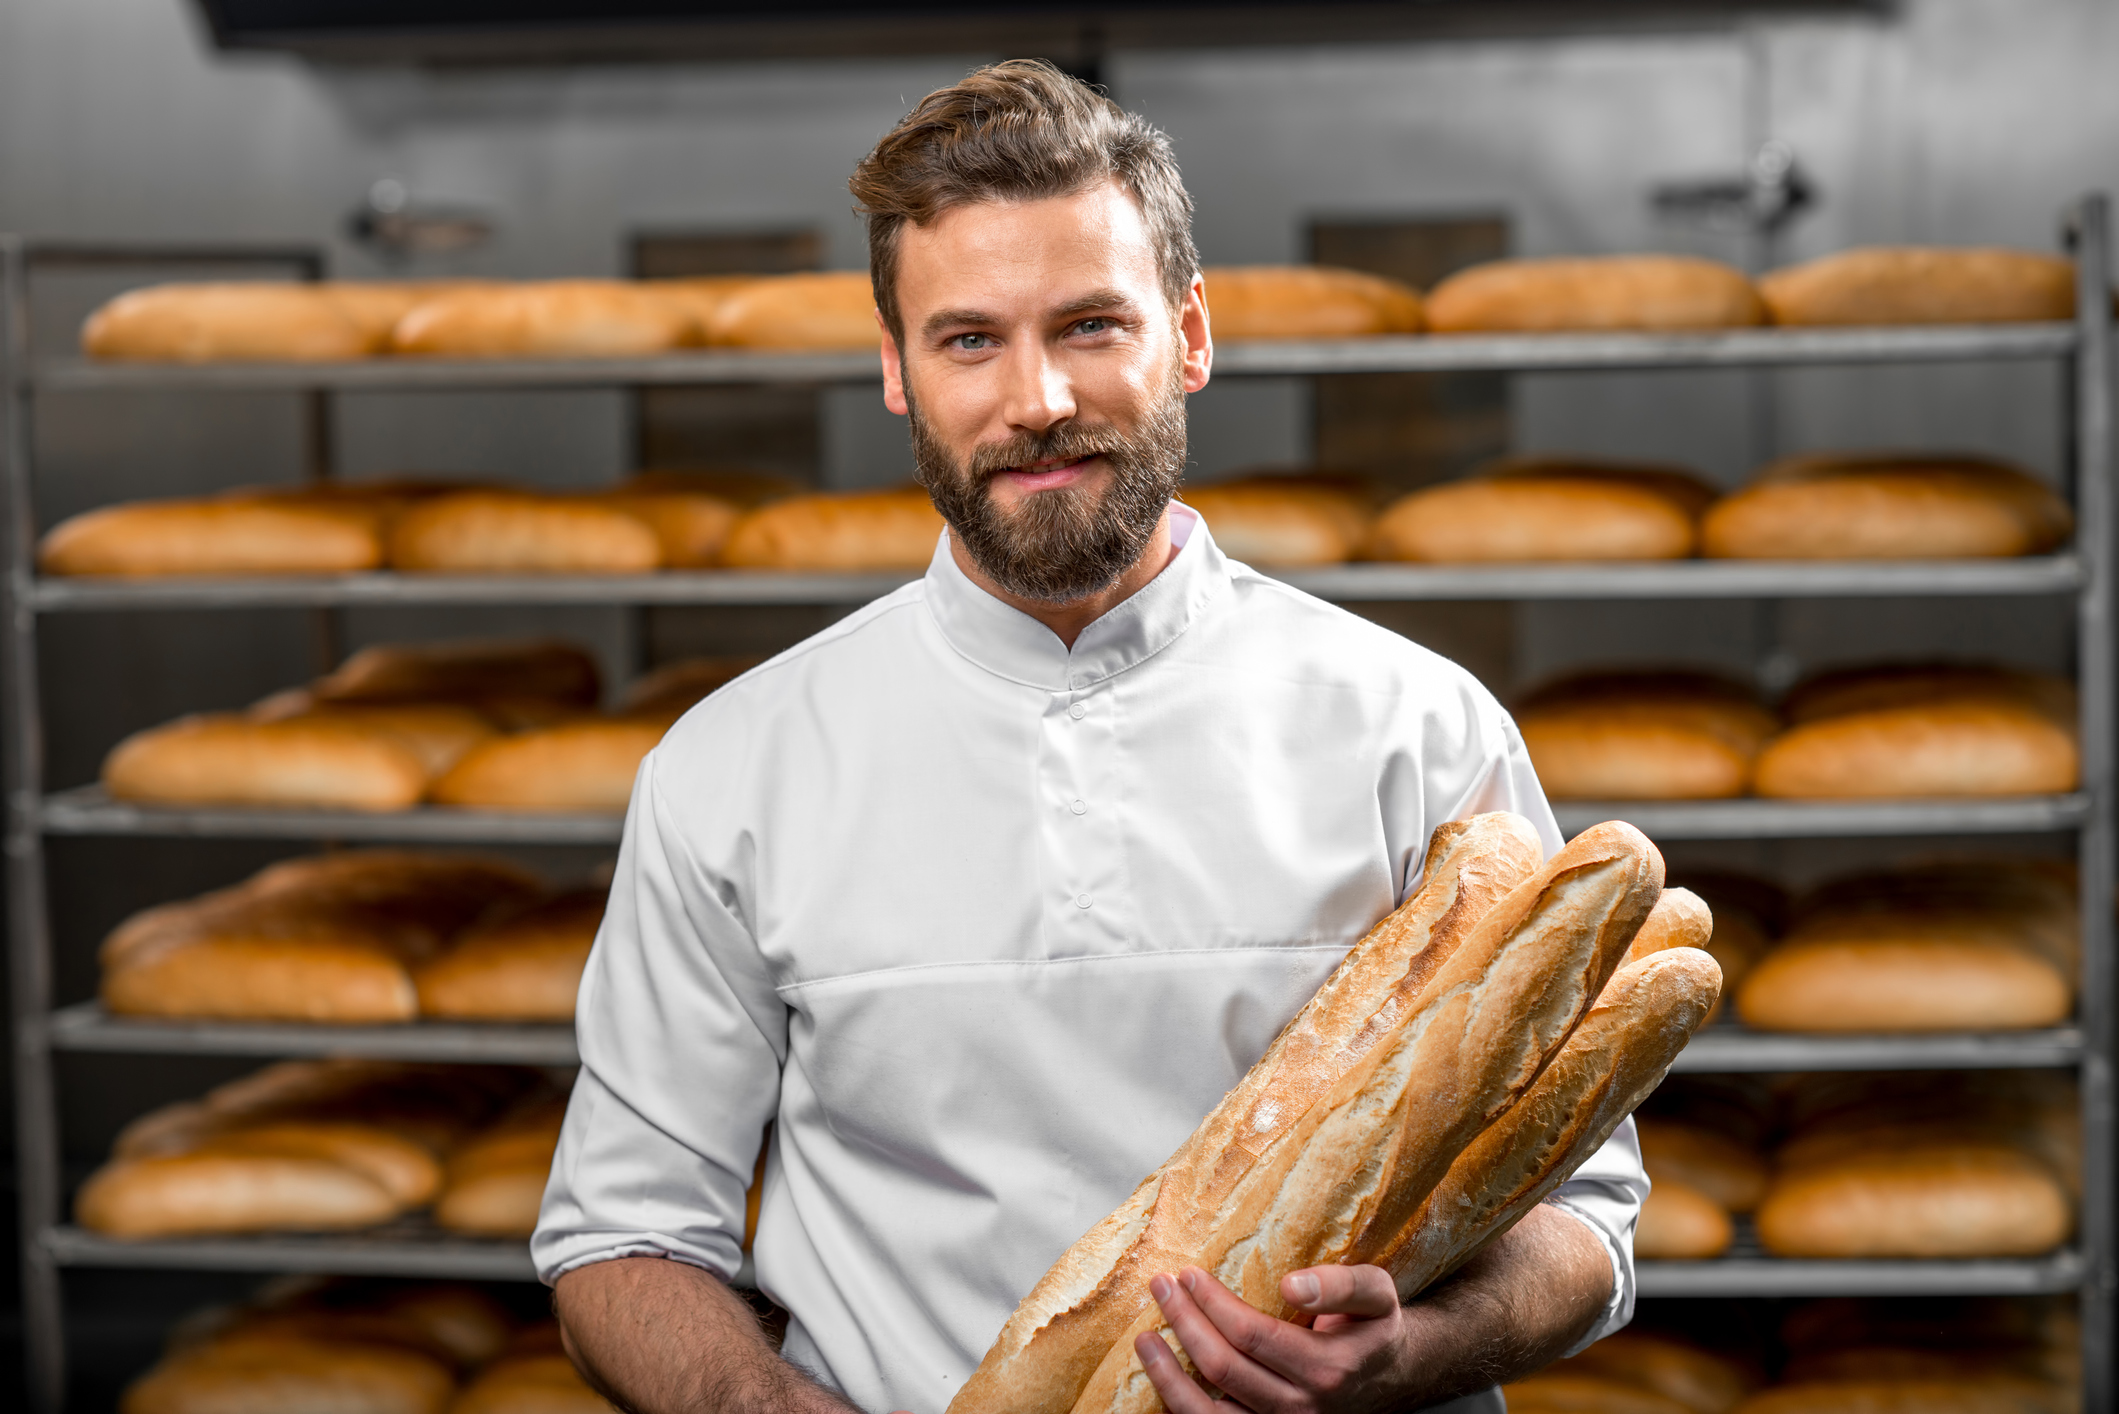 Baker holding baguettes at the manufacturing